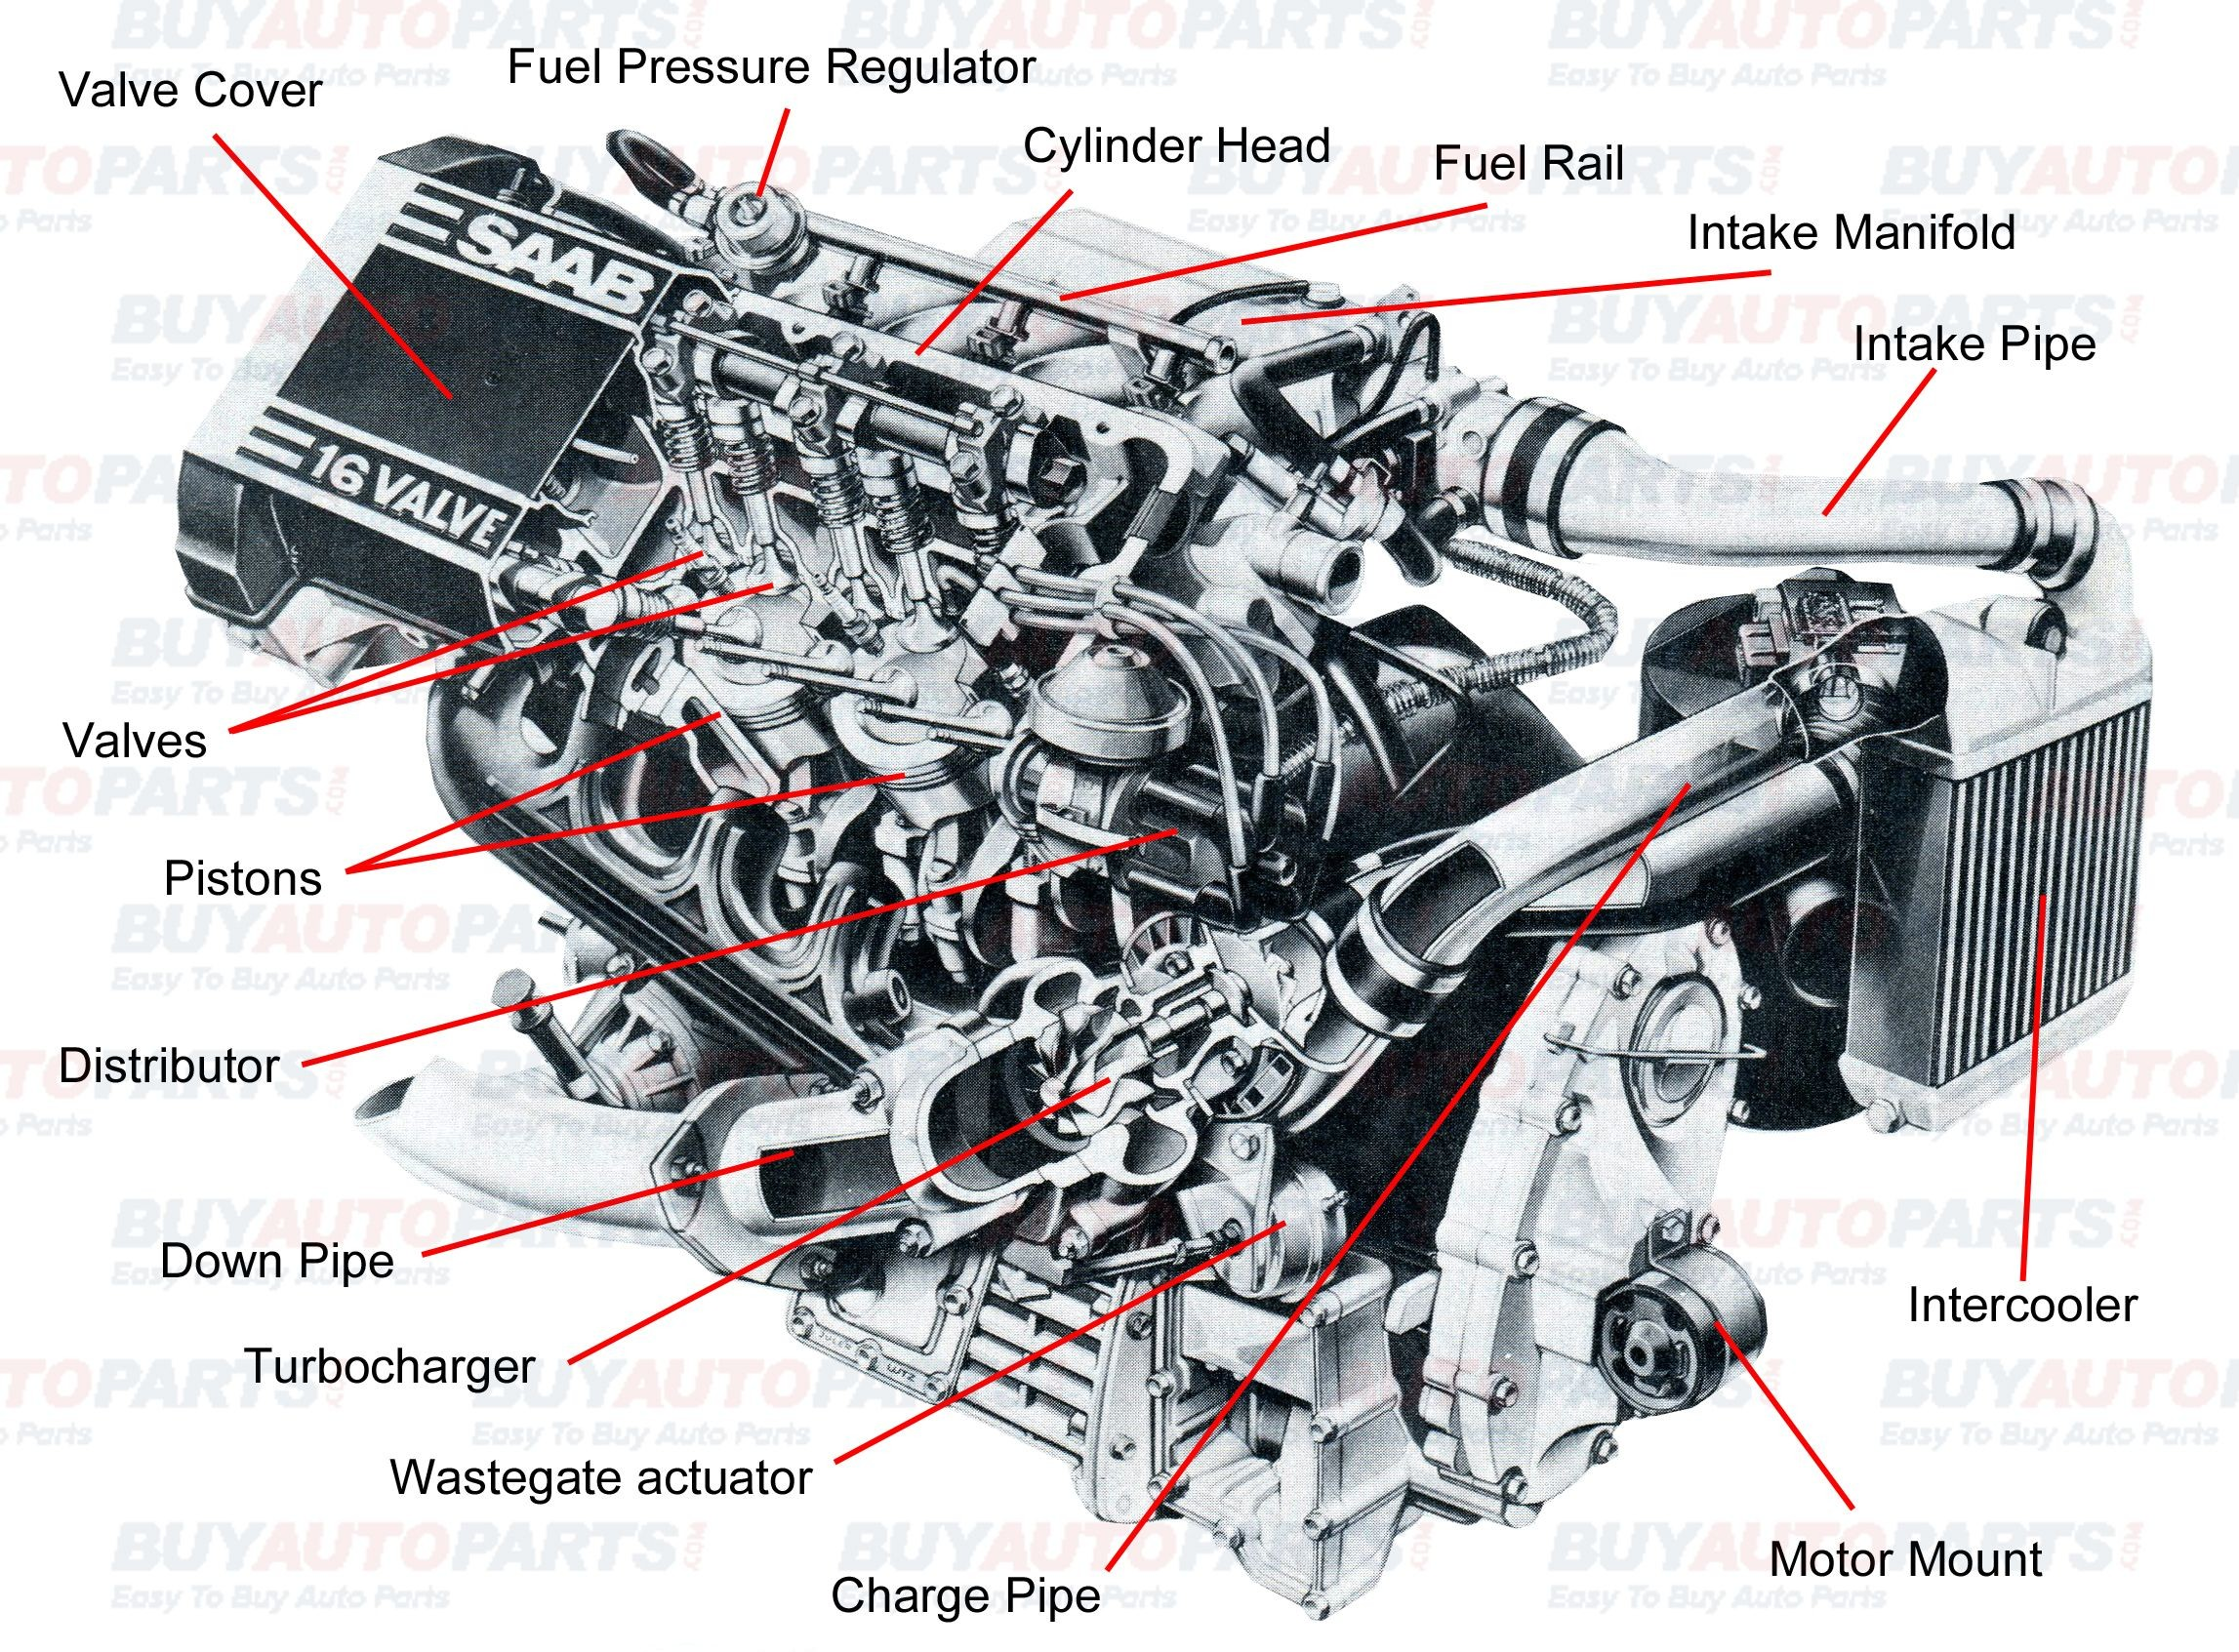 Toyota Engine Diagram All Internal Bustion Engines Have the Same Basic Ponents the Of Toyota Engine Diagram